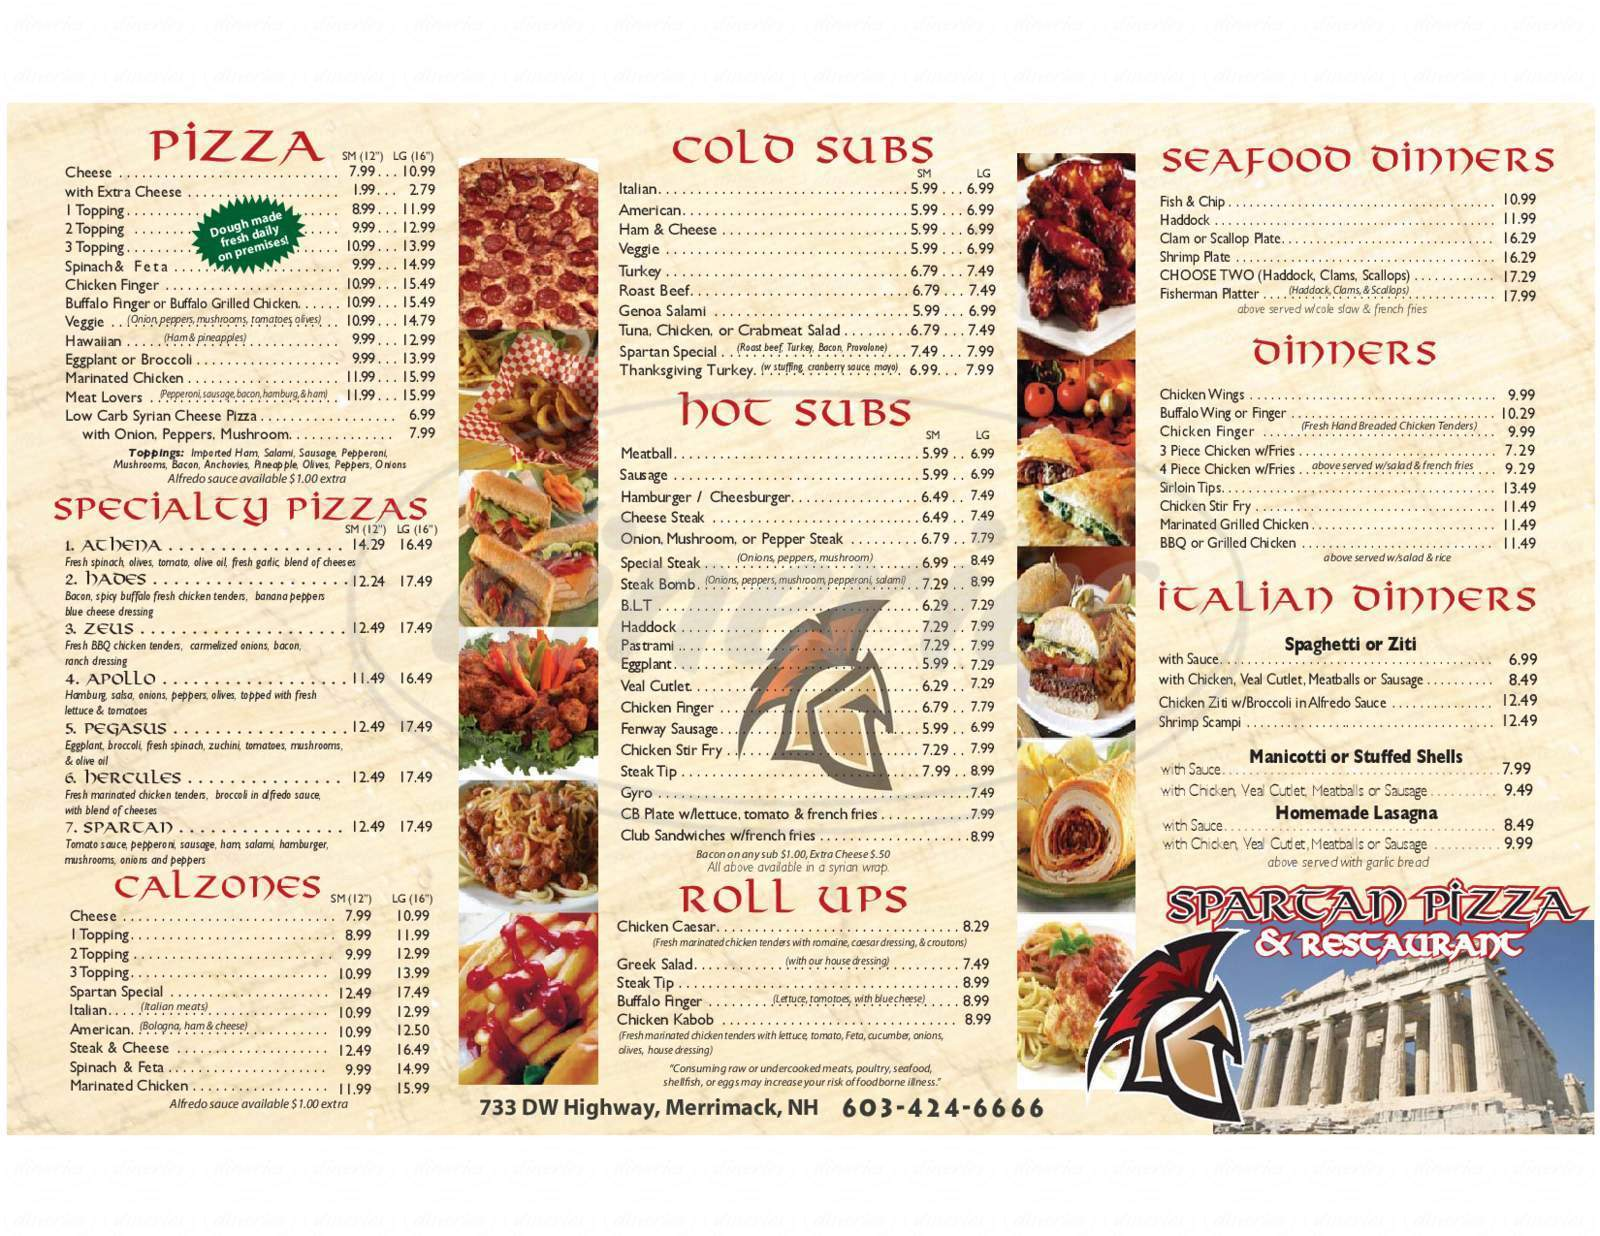 menu for Spartan Pizza